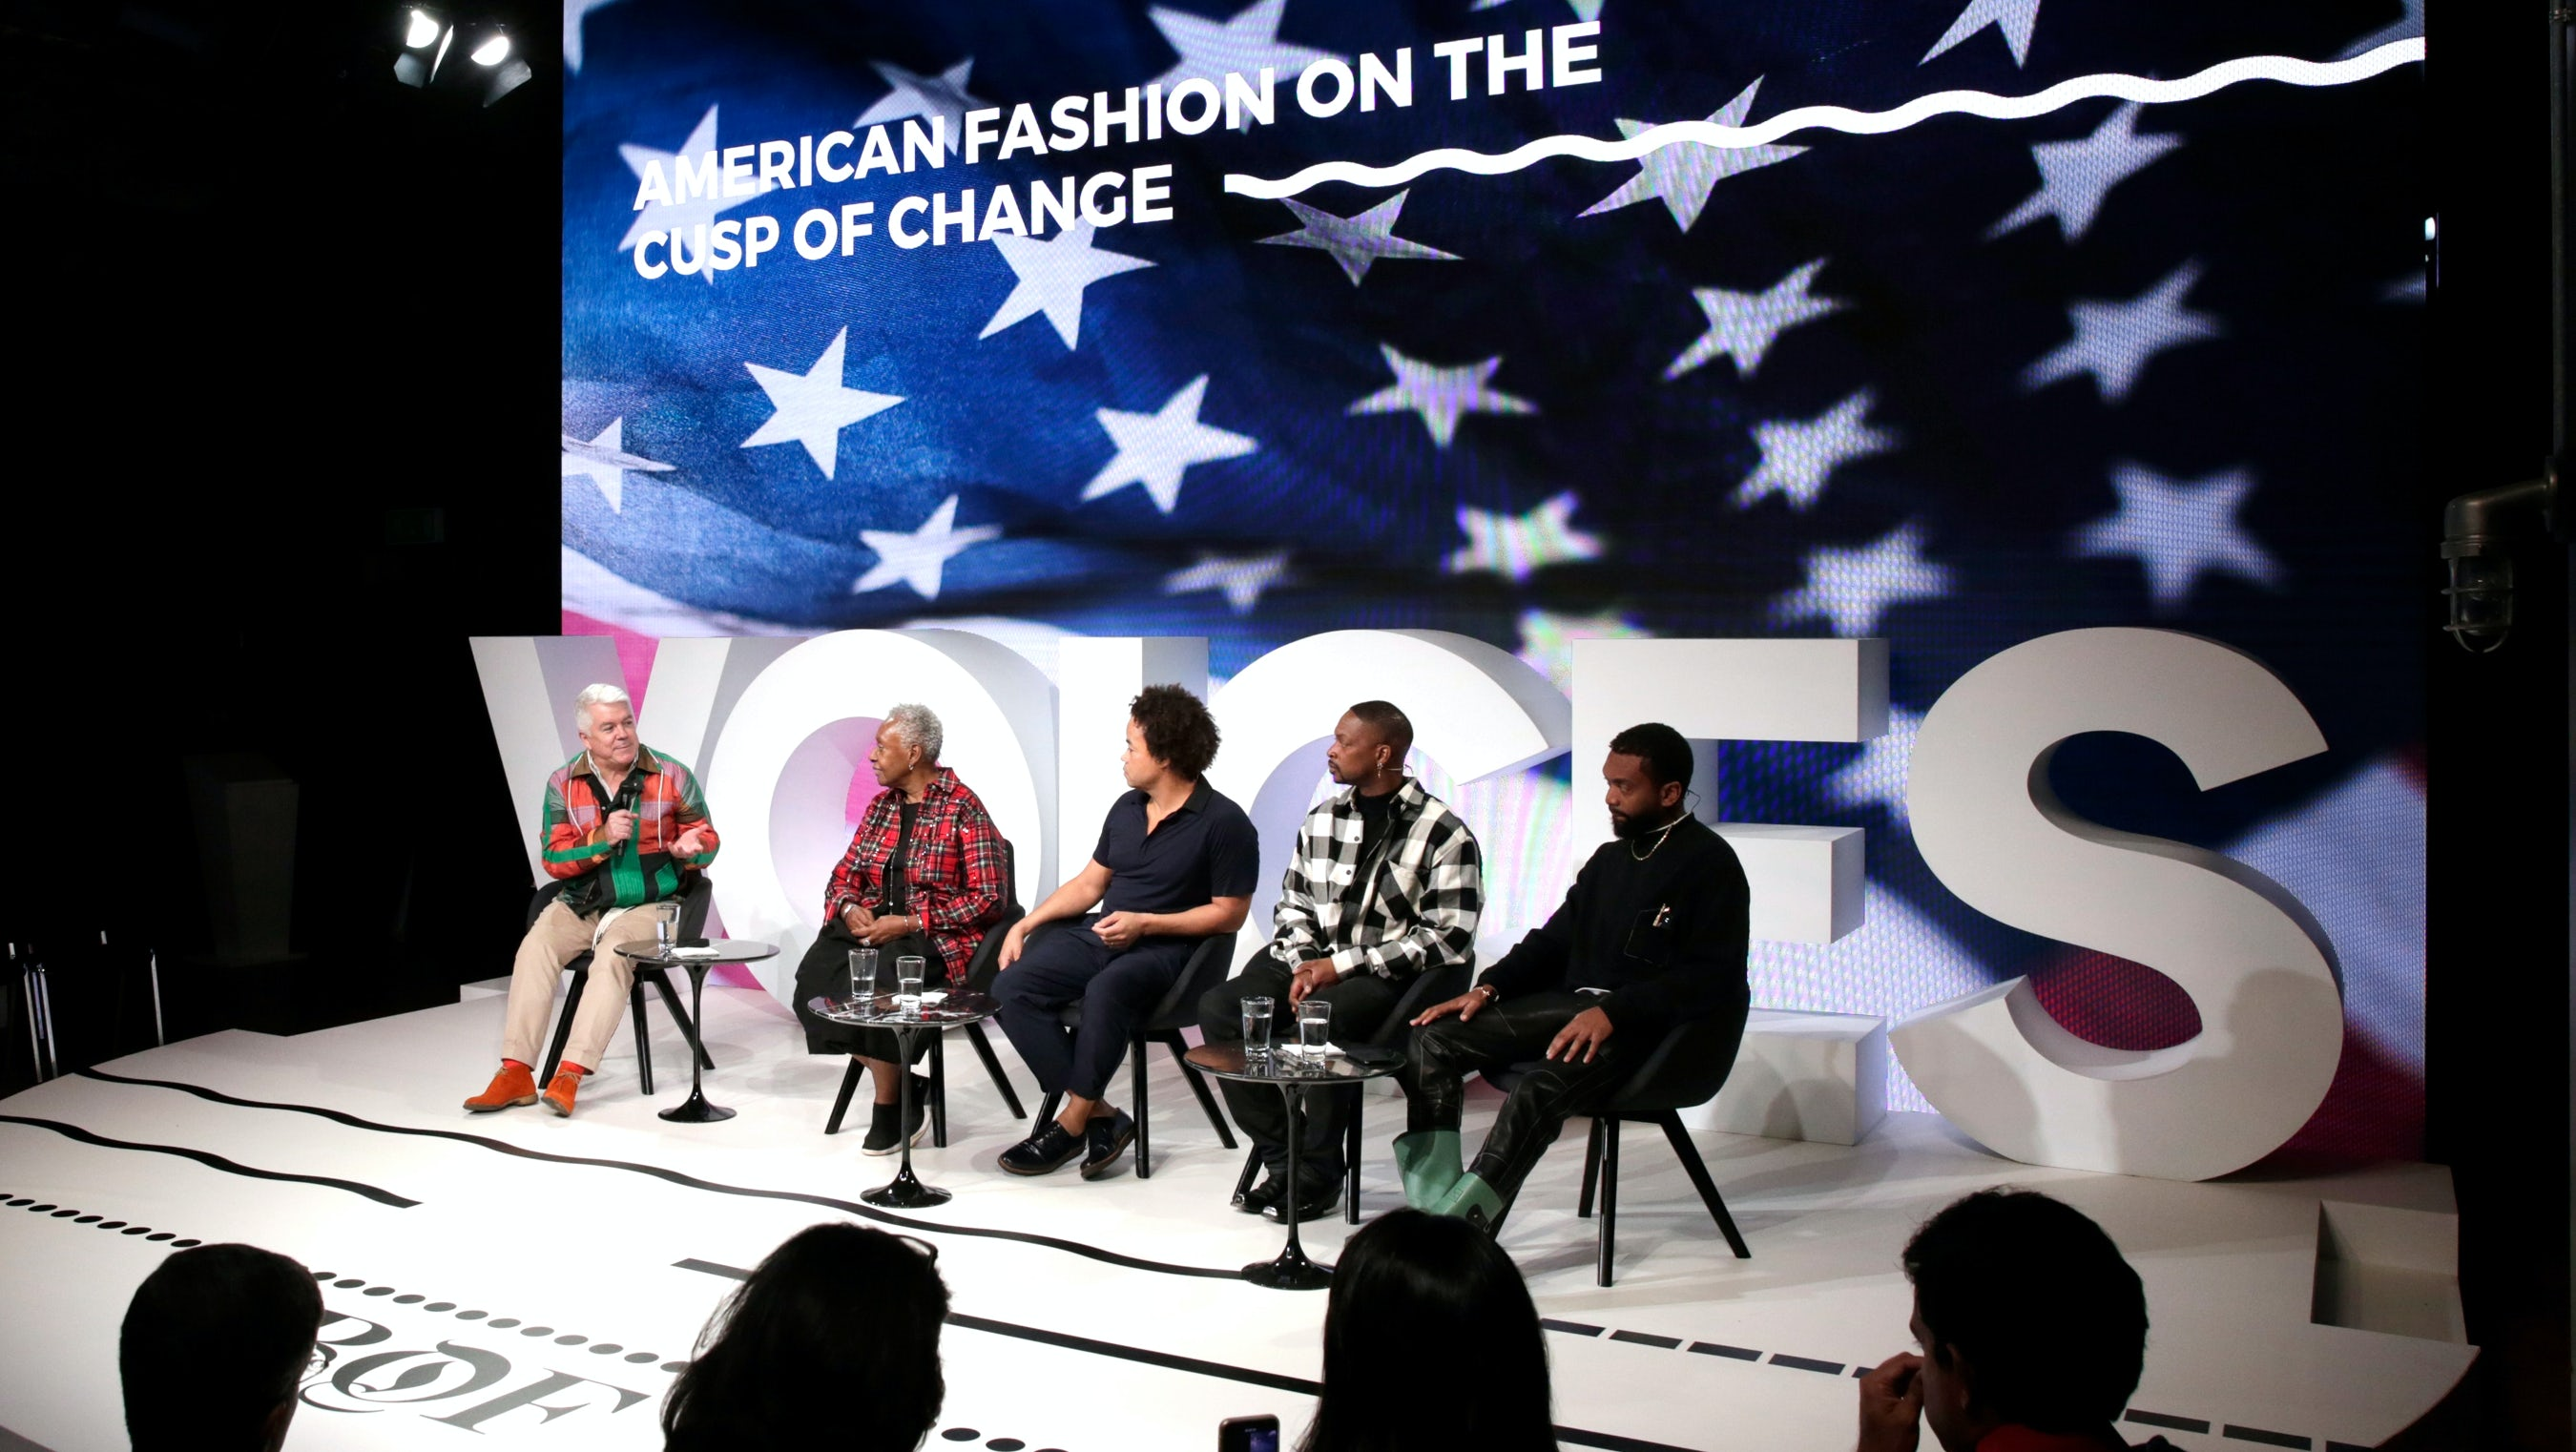 Left to right: Tim Blanks, Bethann Hardison, Patrick Robinson, LaQuan Smith and Kerby Jean-Raymond | Source: Getty Images for The Business of Fashion